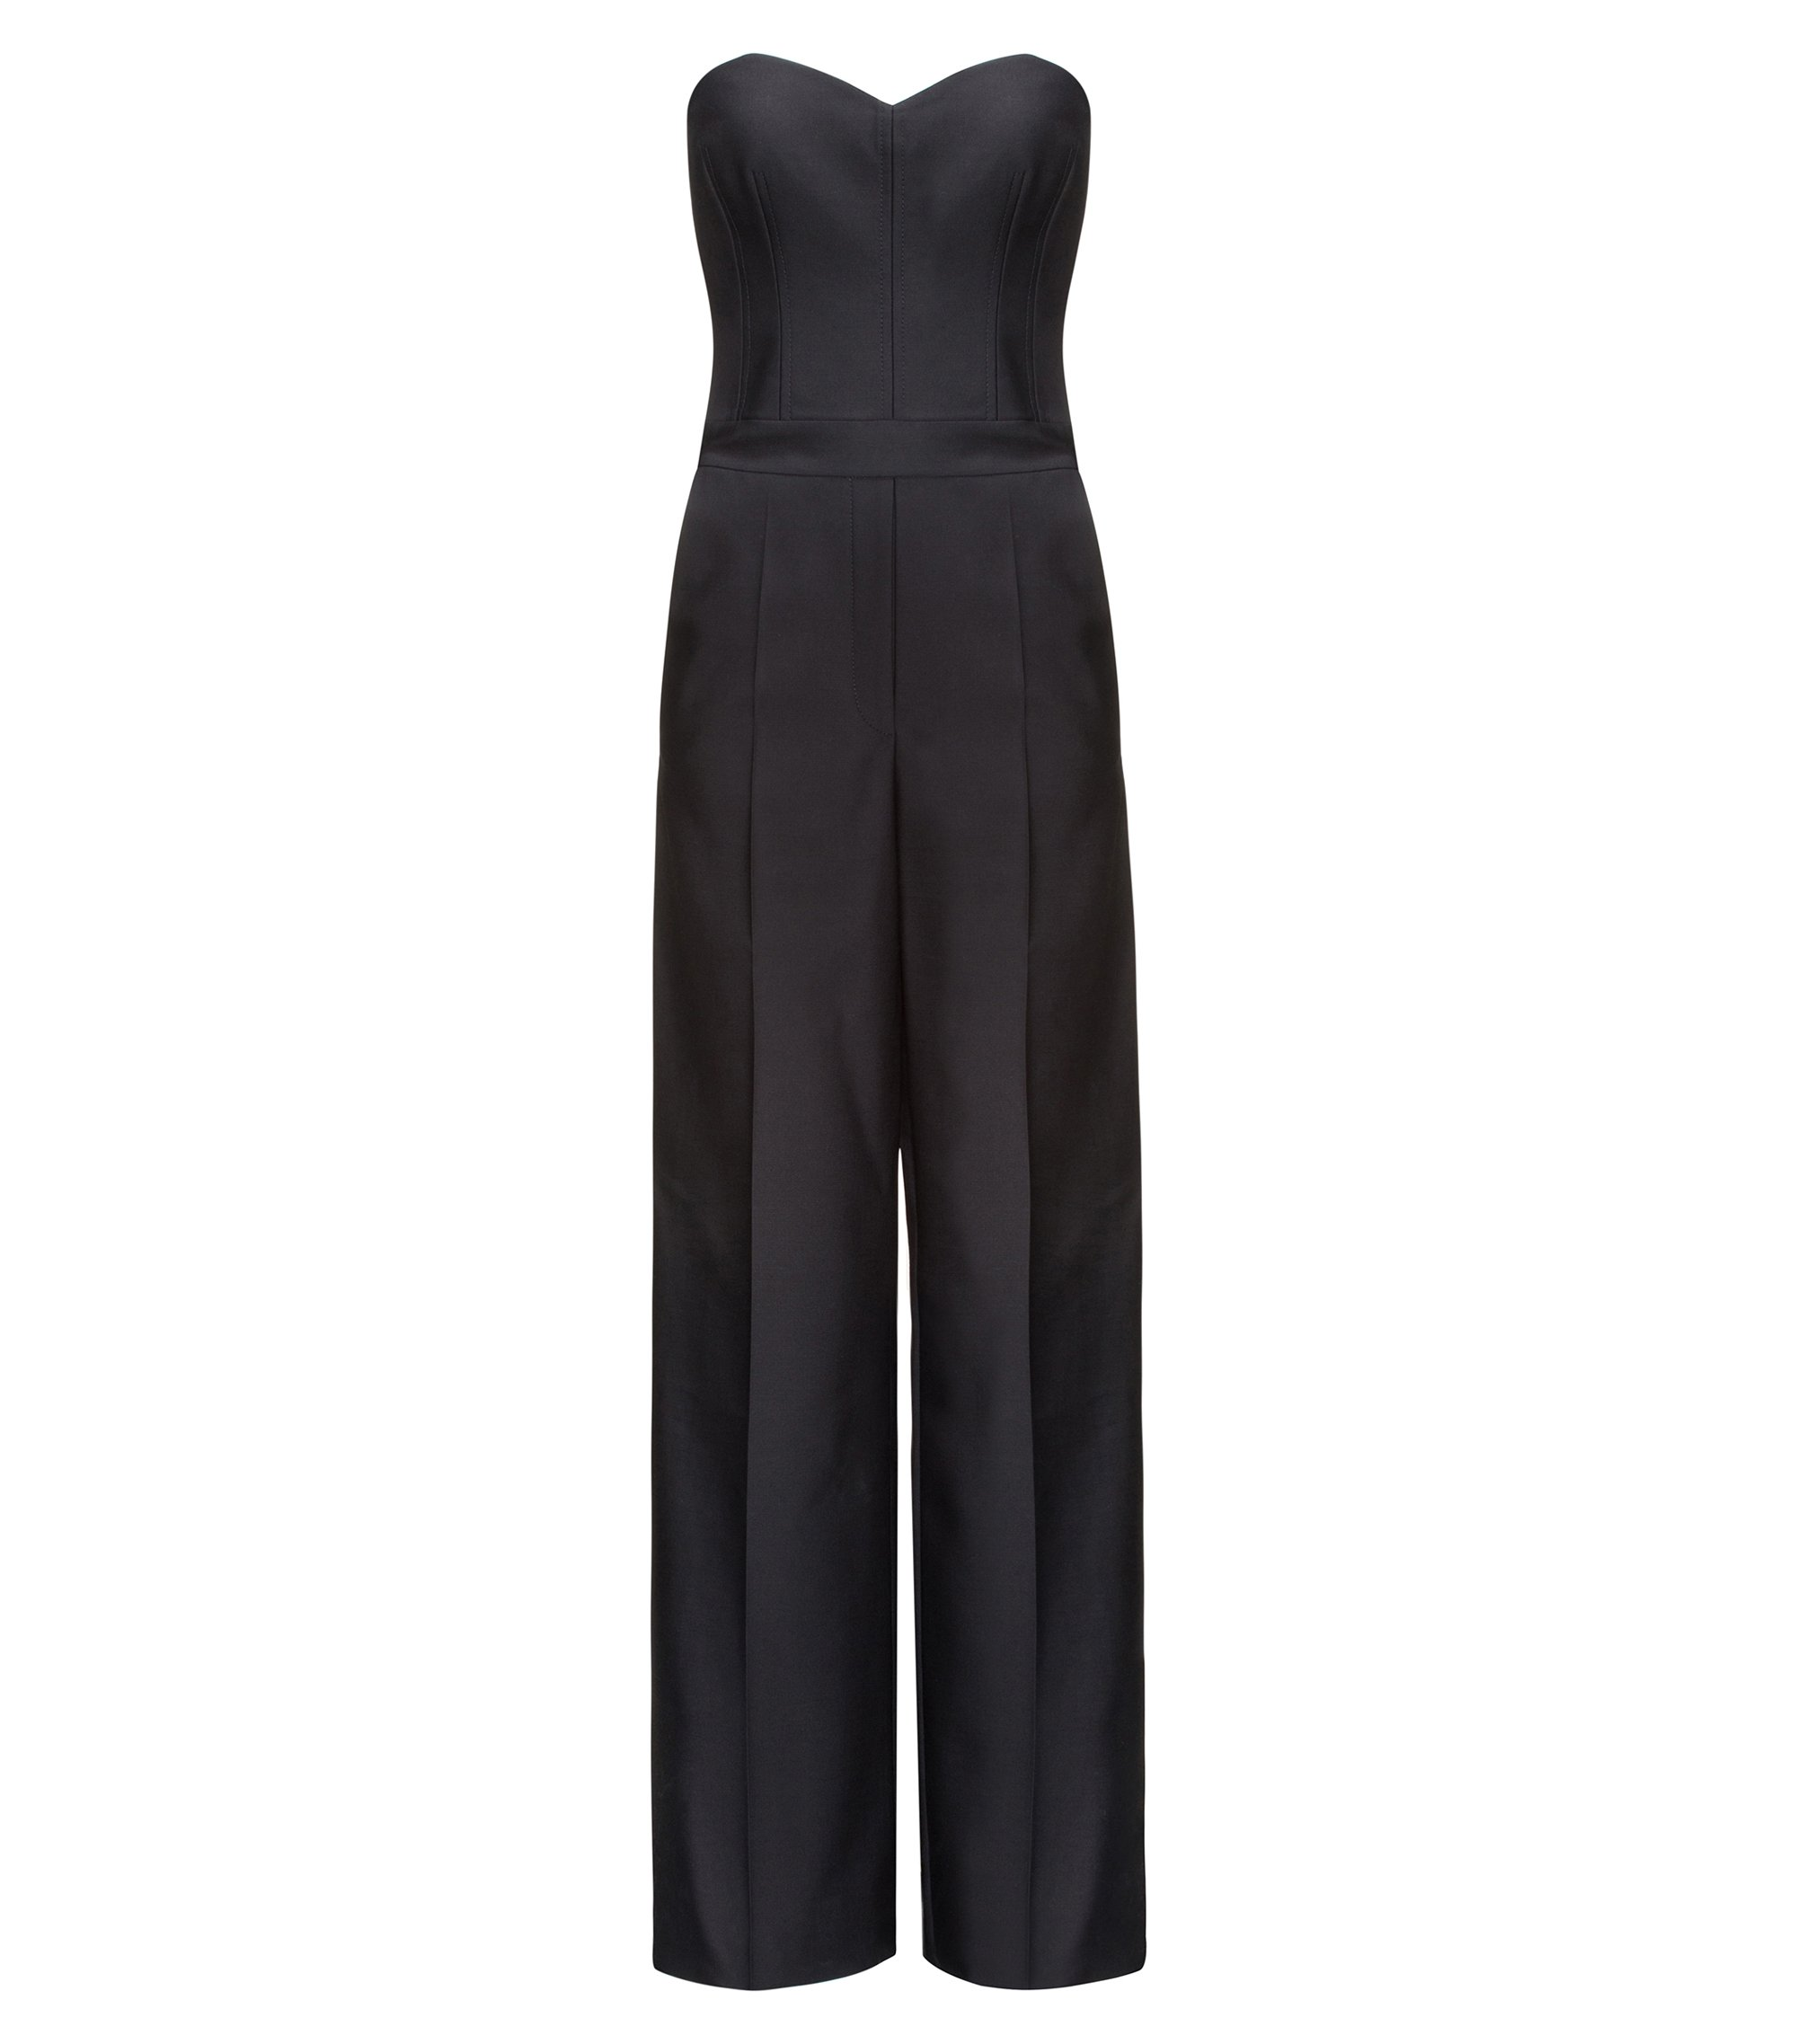 Tuta jumpsuit in misto lana con top a corsetto, Nero